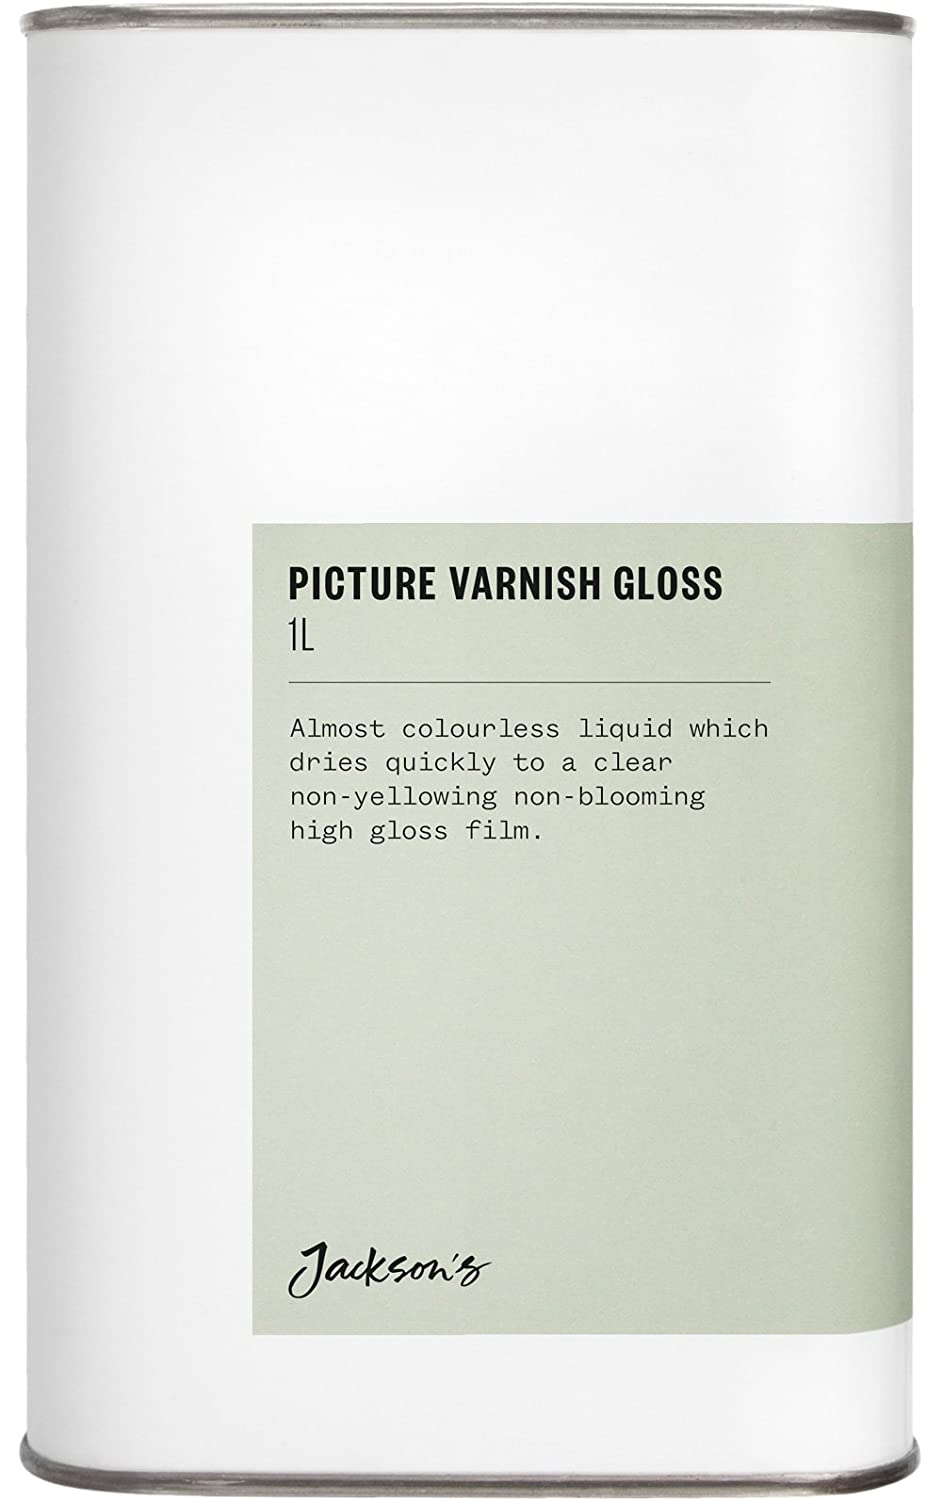 Jackson's : Picture Varnish Gloss 1 Litre : By Road Parcel Only Jackson's